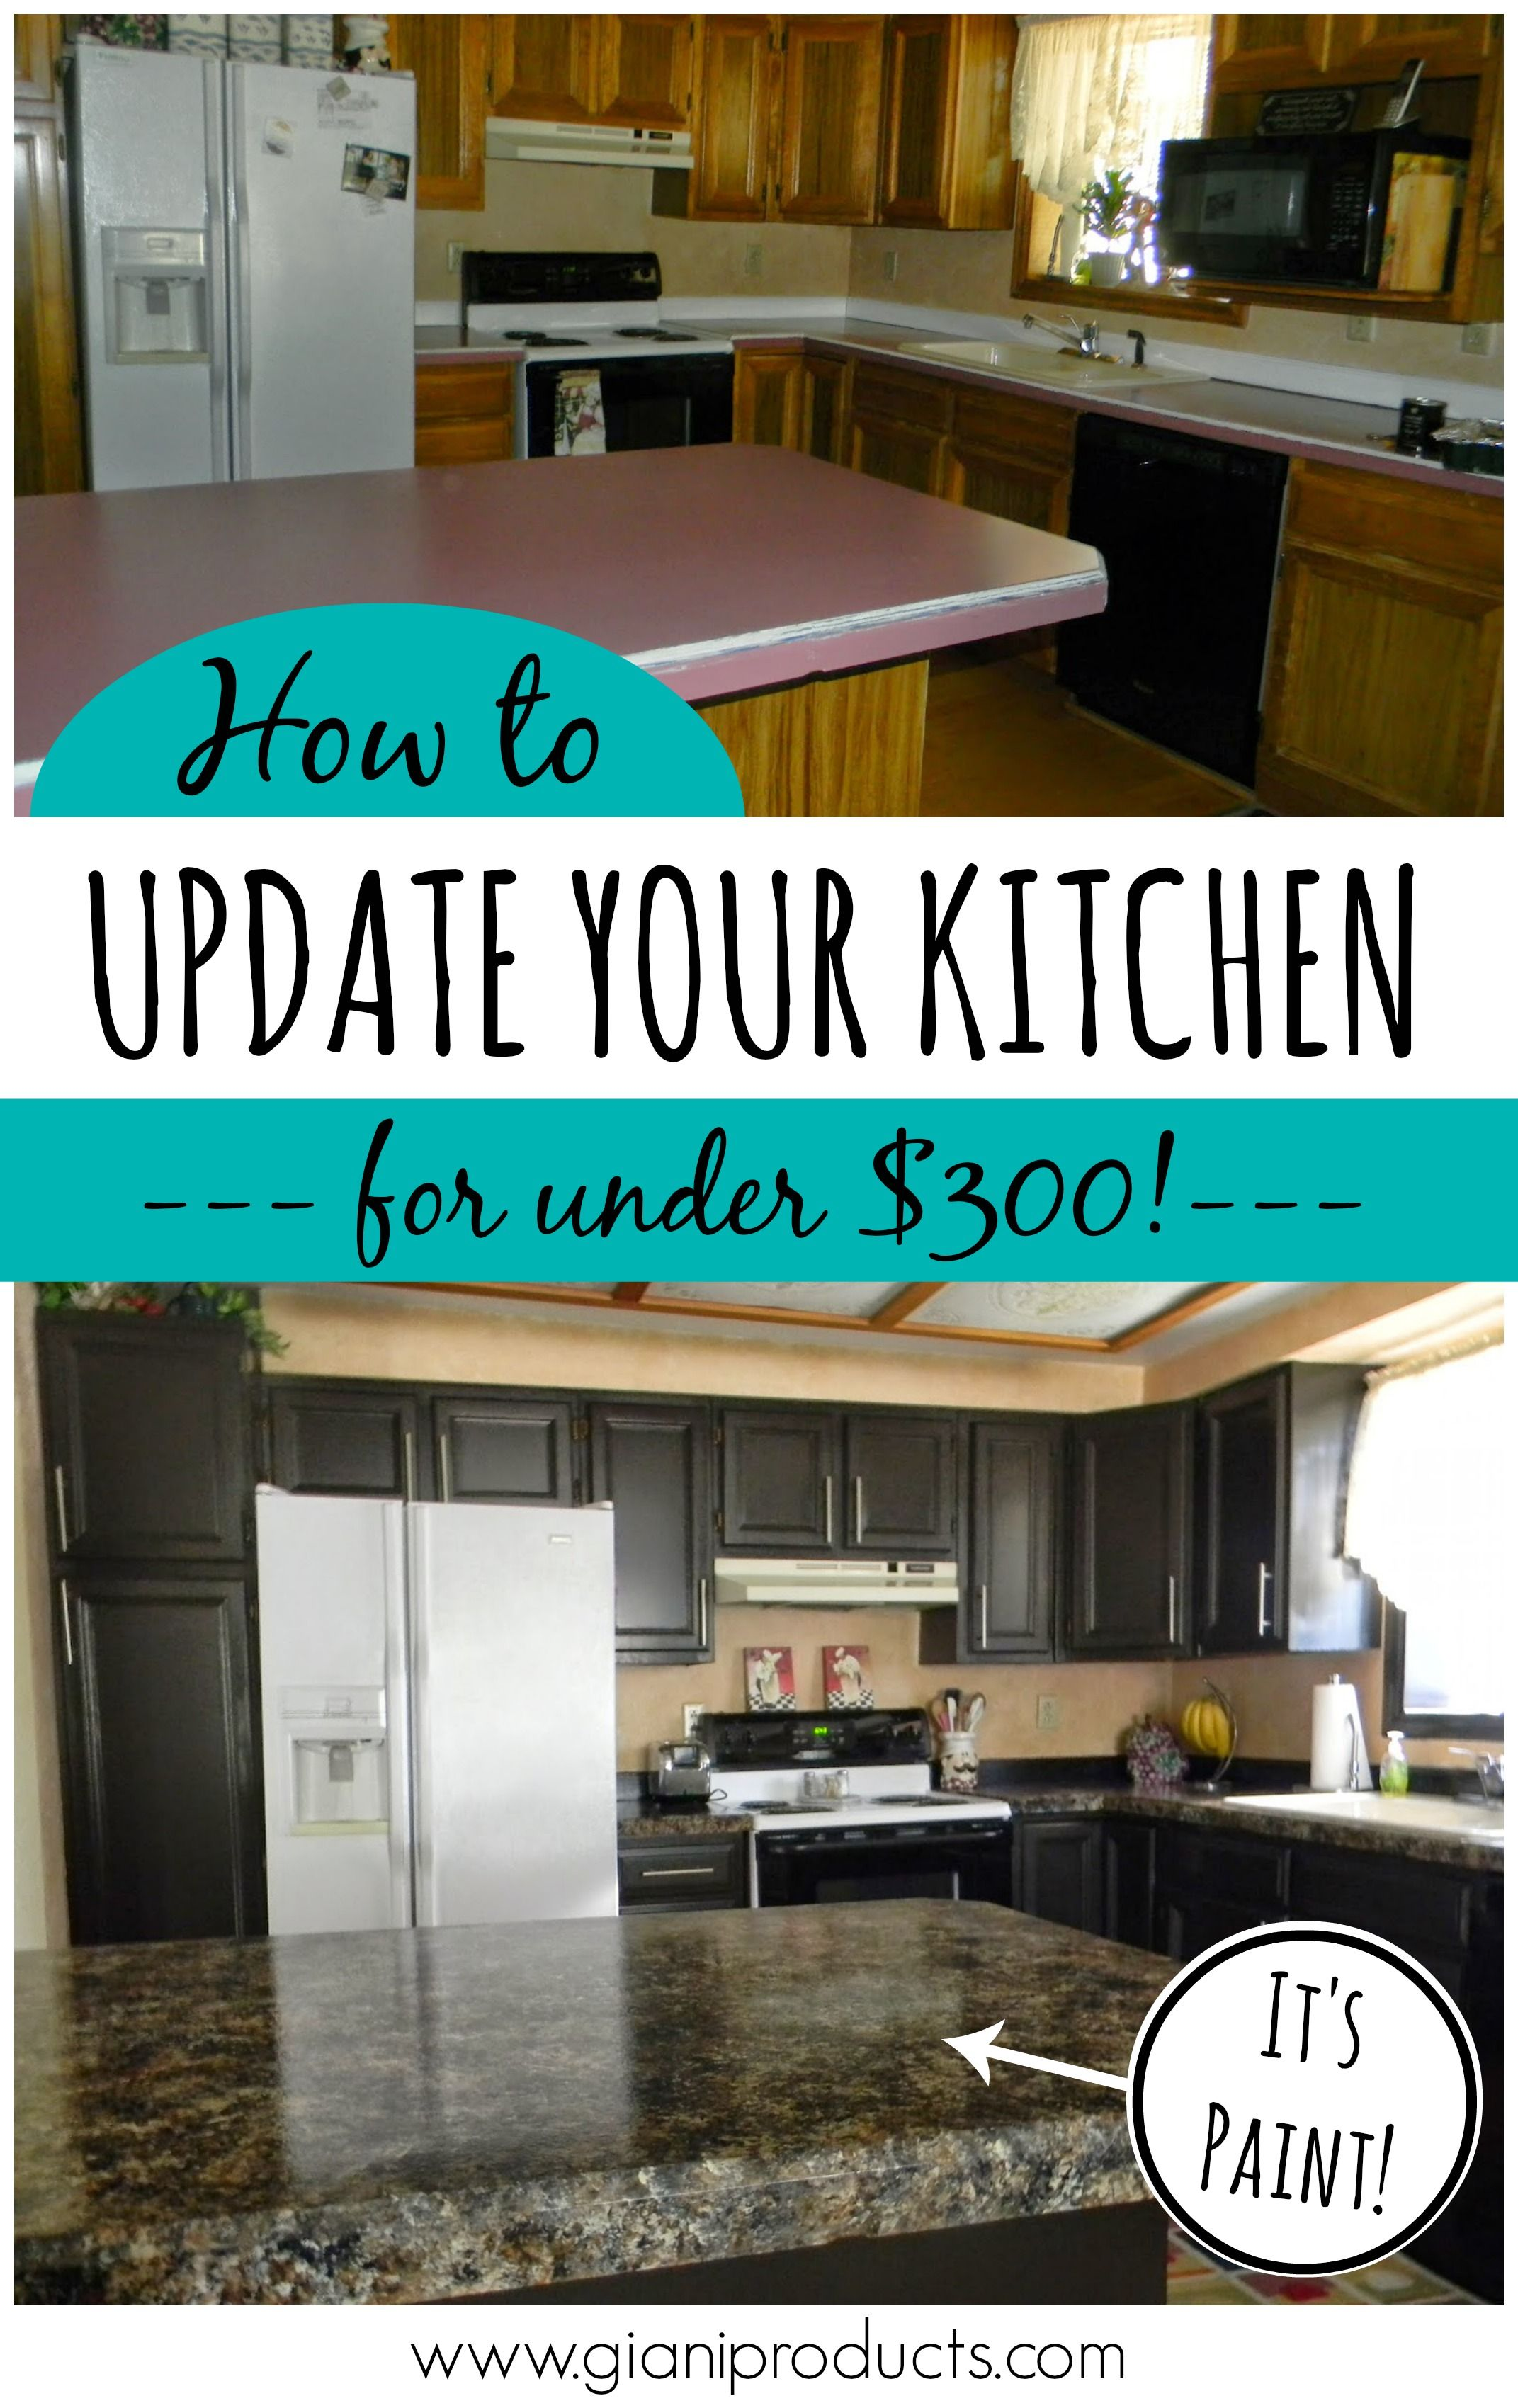 Kitchen Makeover Ideas On A Budget Part - 39: Kitchen Update On A Budget! Countertop Paint That Looks Like Granite And  One-day